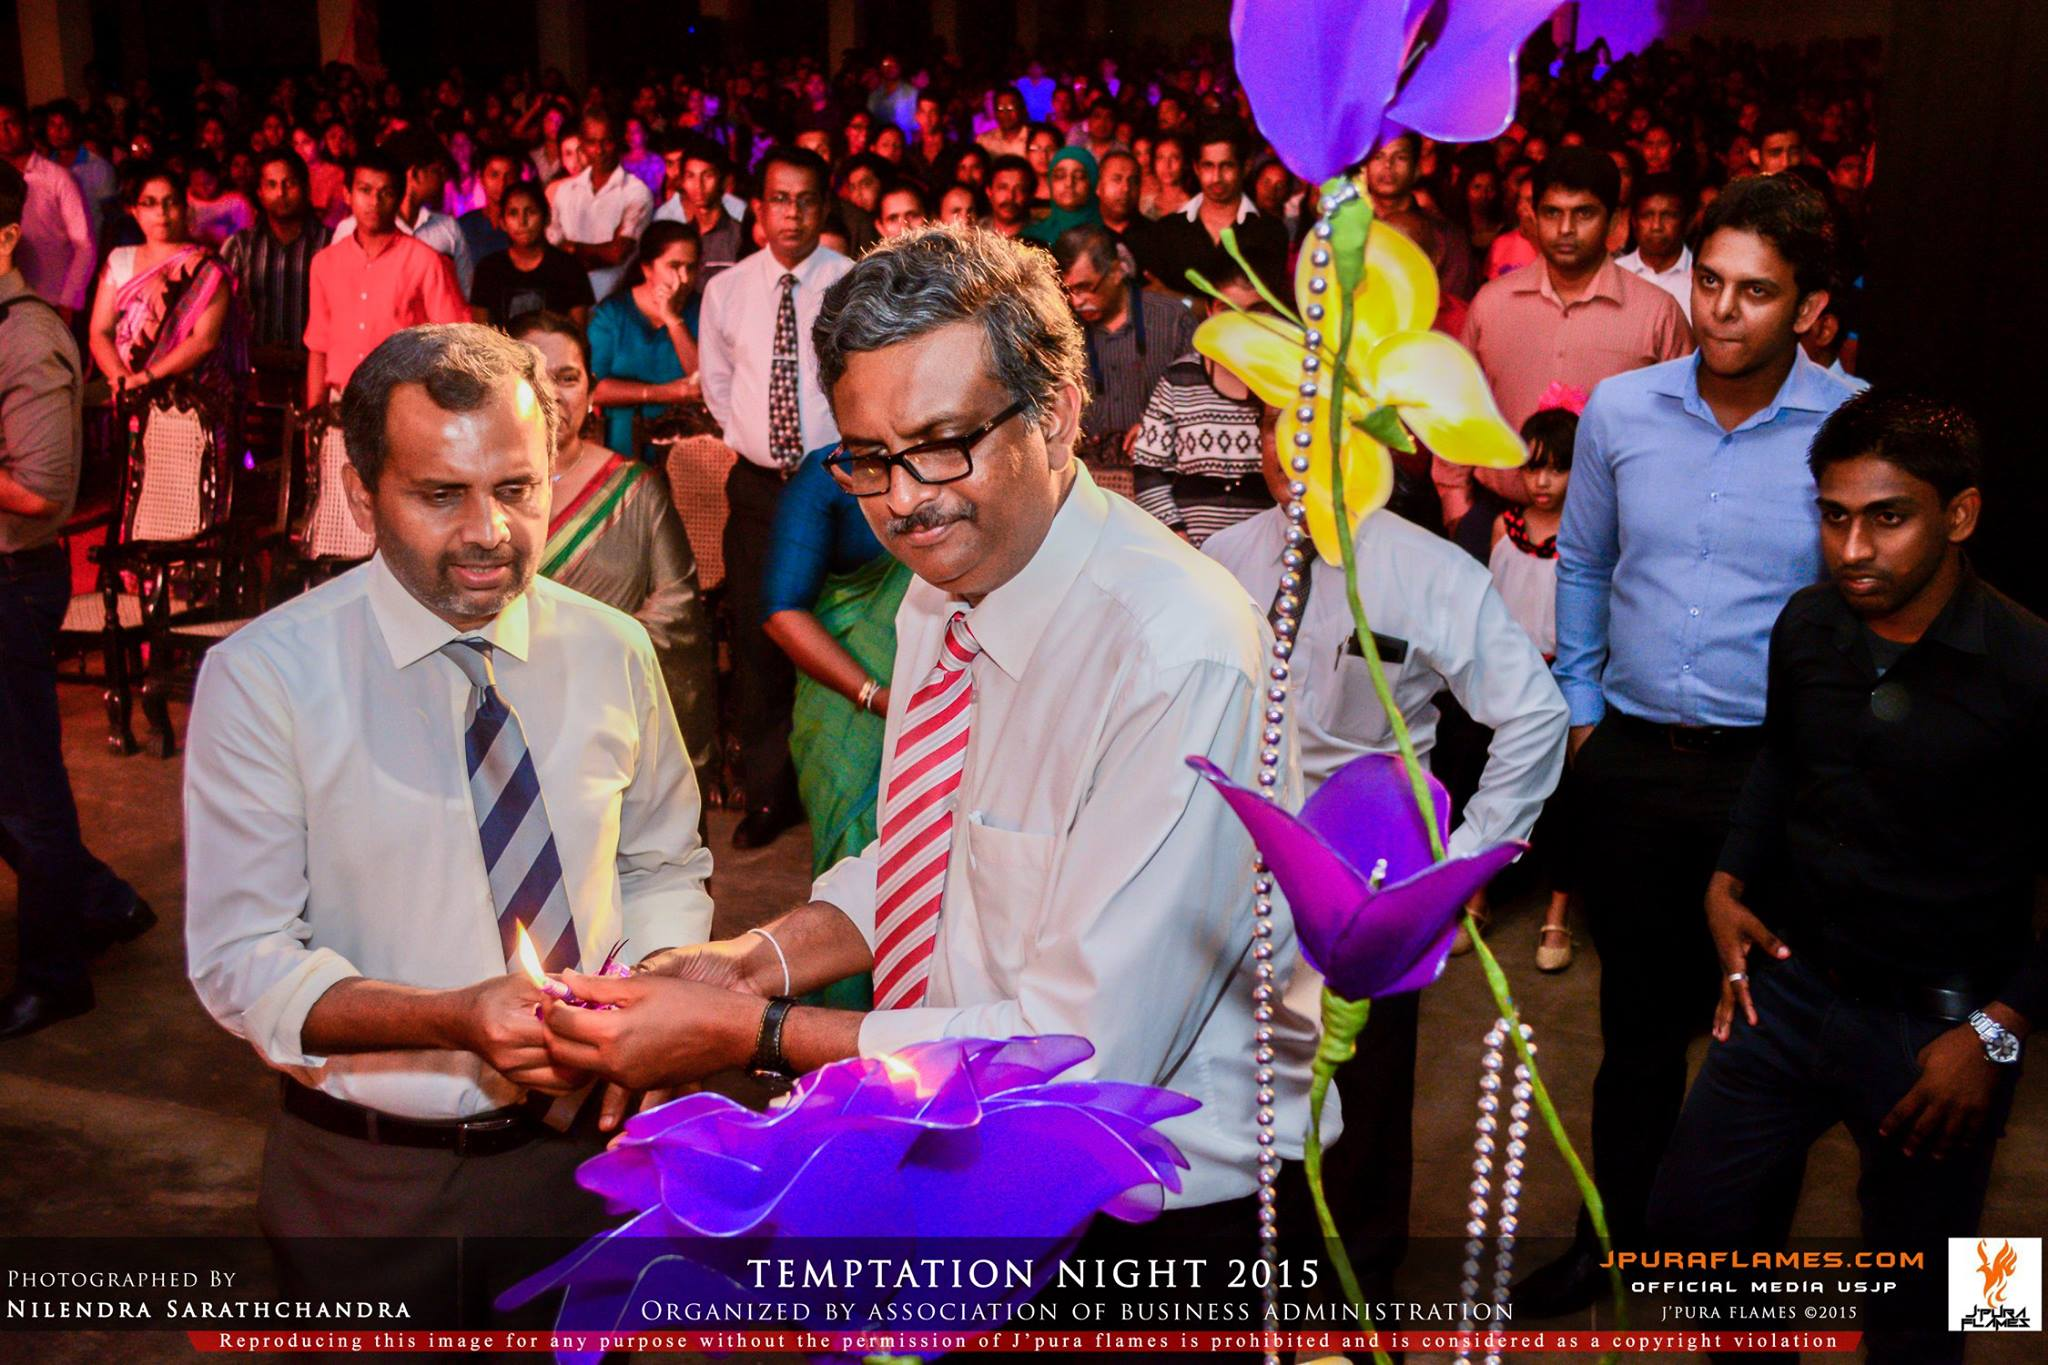 Temptation Night 2015